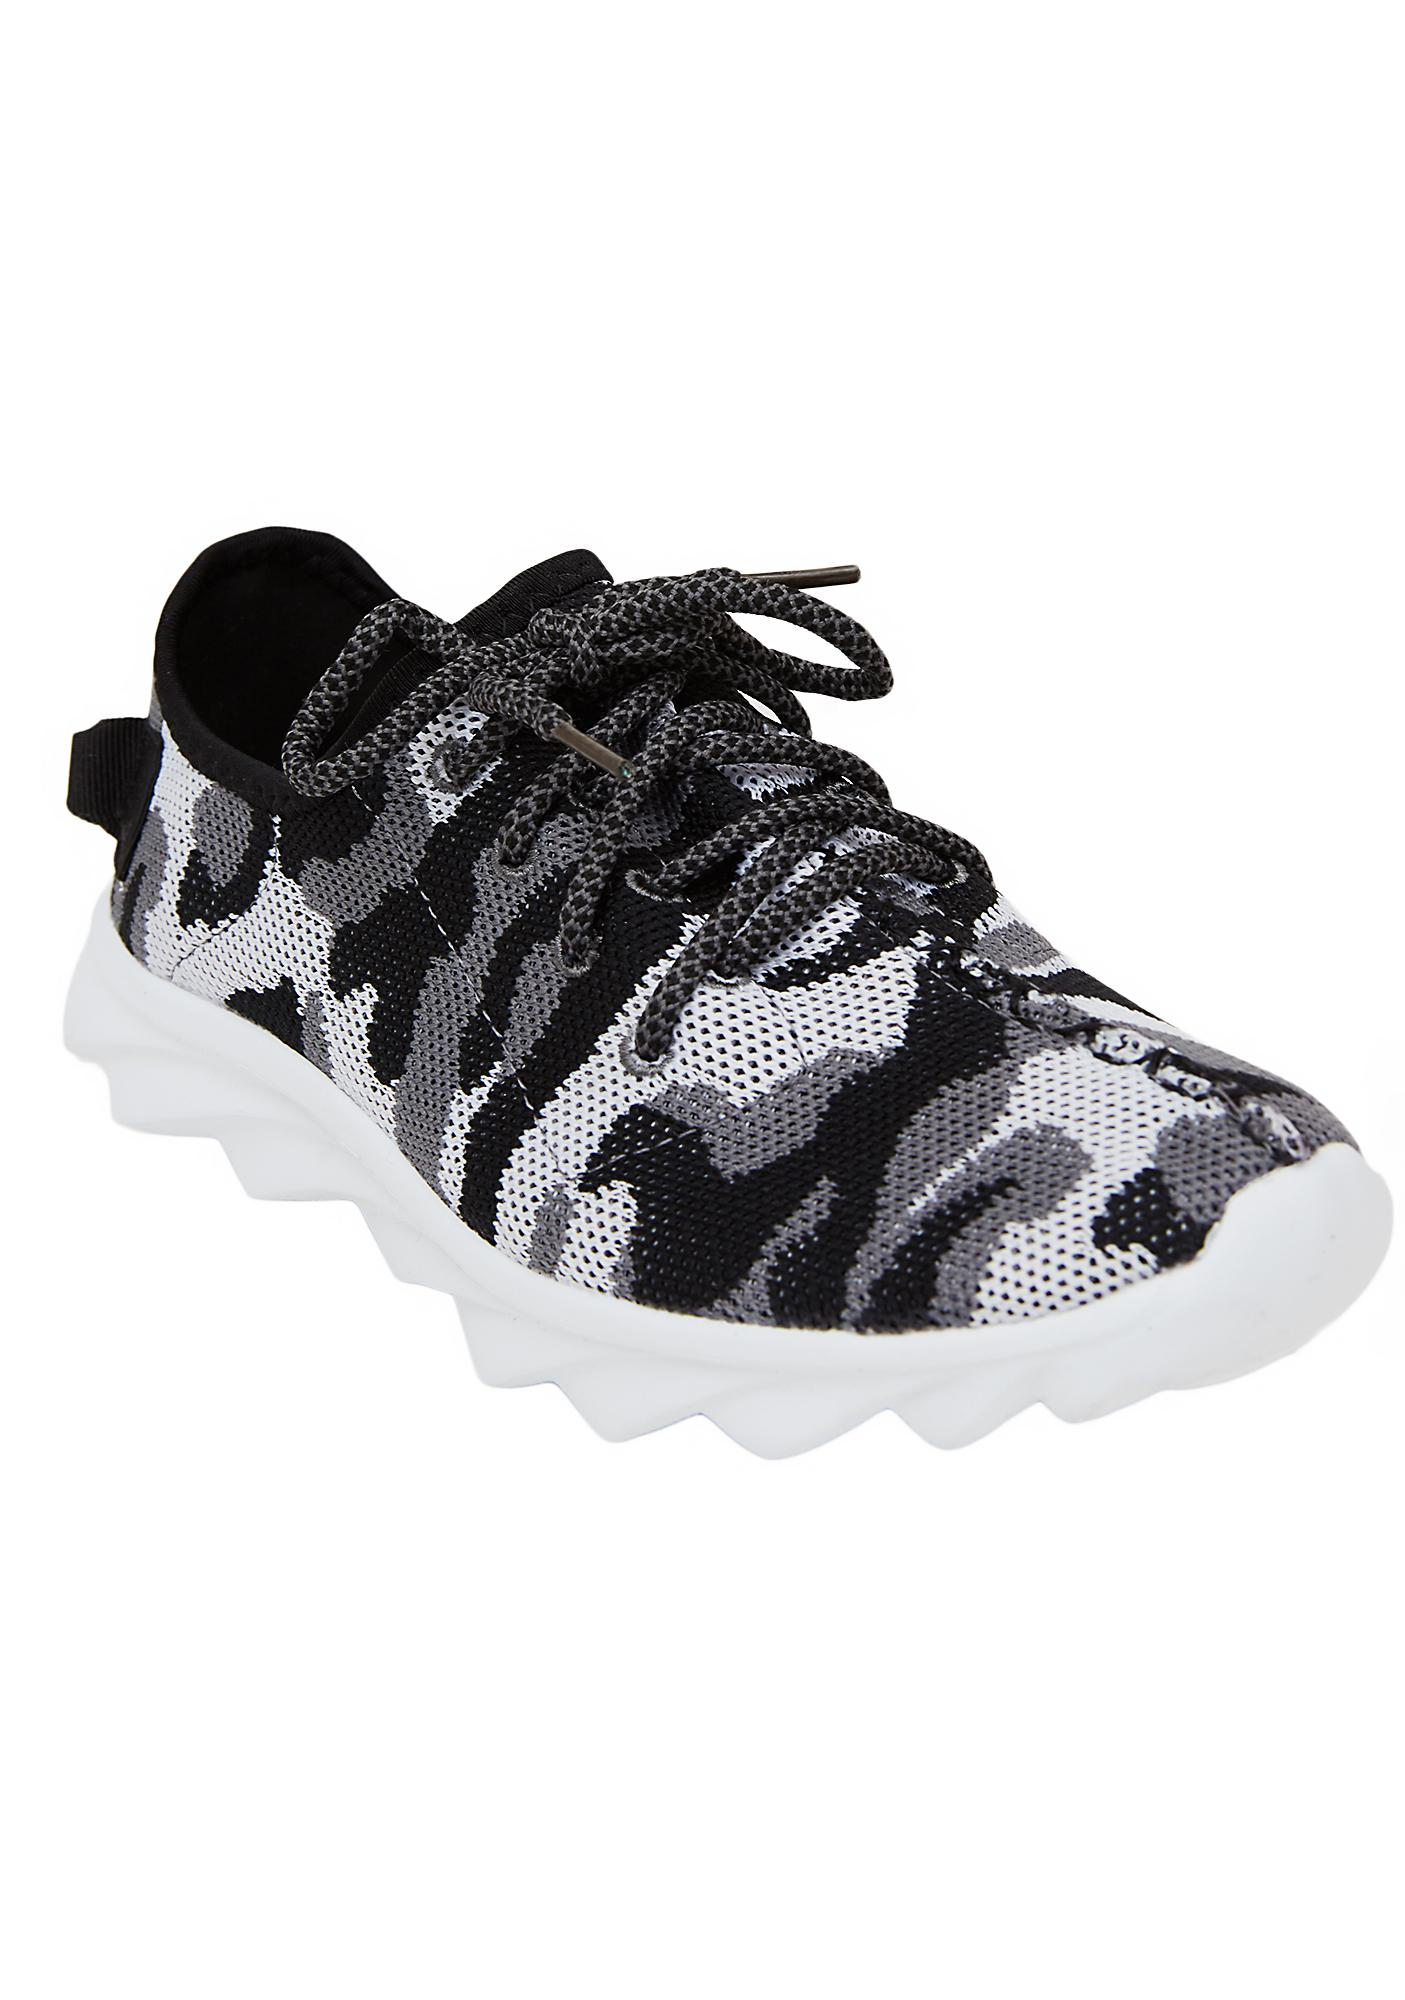 Hidin' Out Camo Sneakers